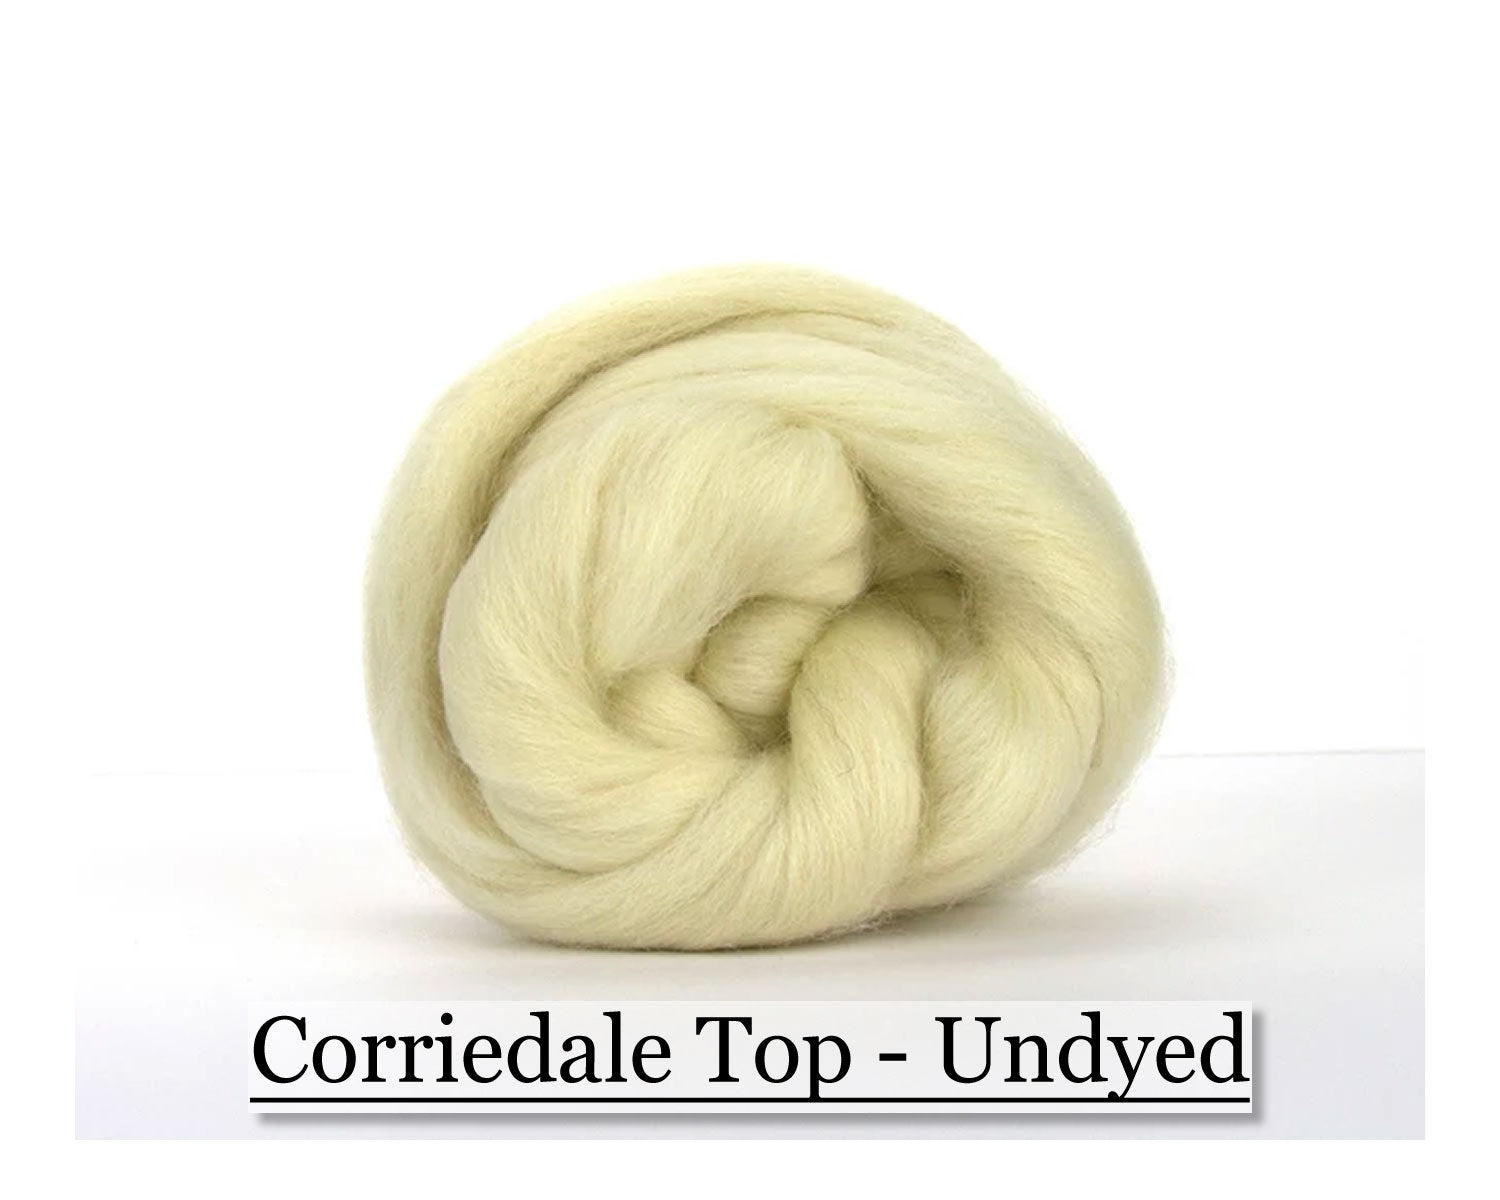 White Corriedale Top - 1, 2 or 4 oz size